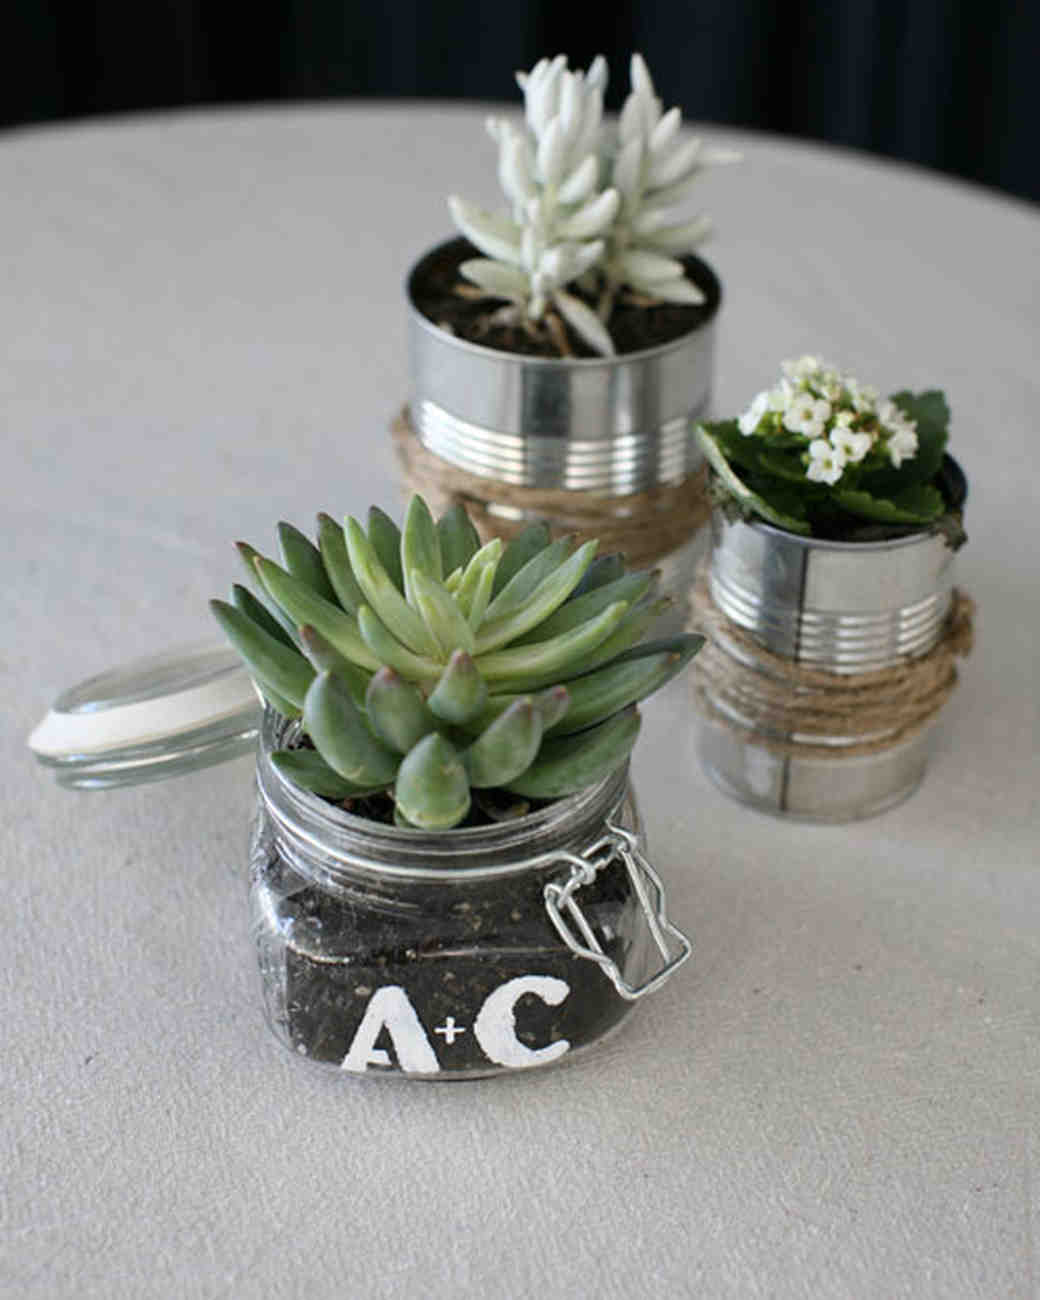 Cute Wedding Centerpiece Ideas: 36 Ideas For Using Succulents At Your Wedding